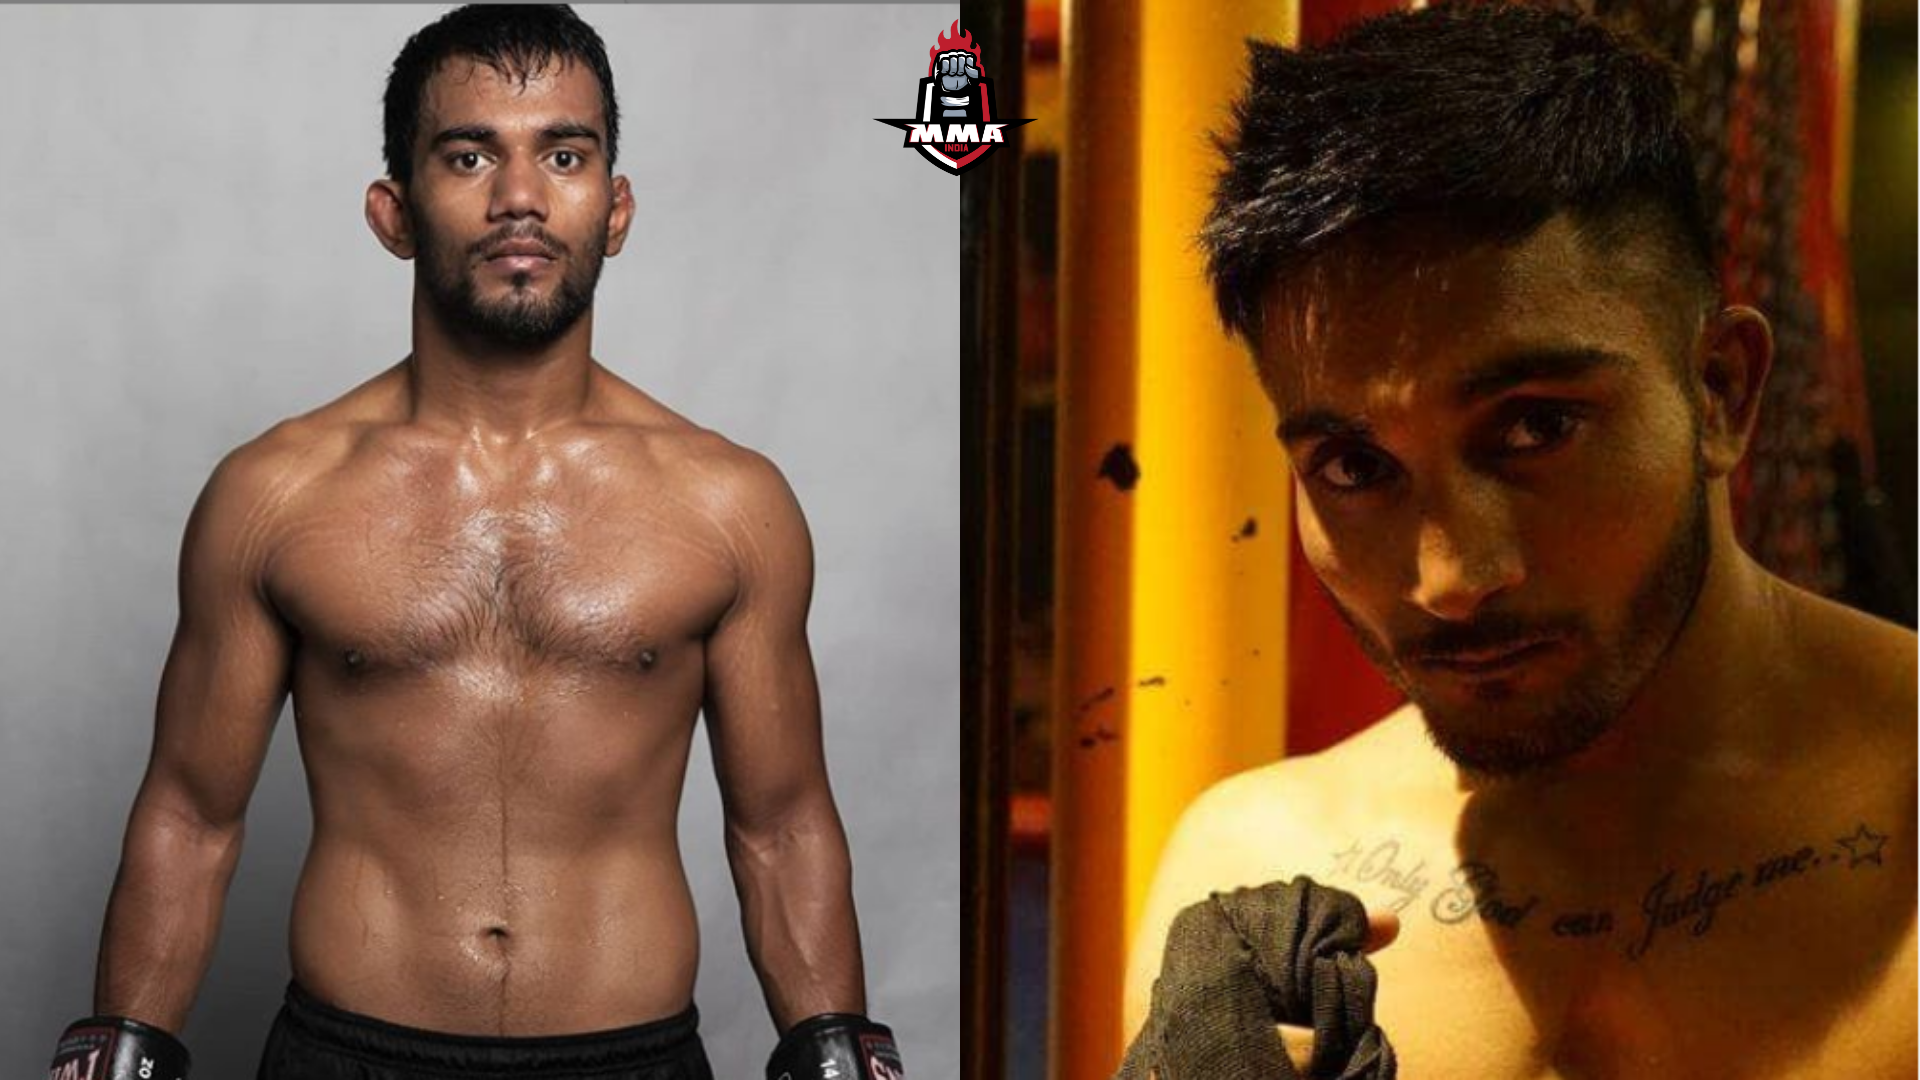 MENA FIGHTER ASSAD AL HANINI ALONG SIDE INDIAN ATHLETES SATYA BEHURIA AND SARABJIT SINGH.UNITE TO SUPPORT HIS HIGHNESS SHAIKH KHALED AND BRAVE CF'S CAMPAIGN AGAINST CORONAVIRUS -